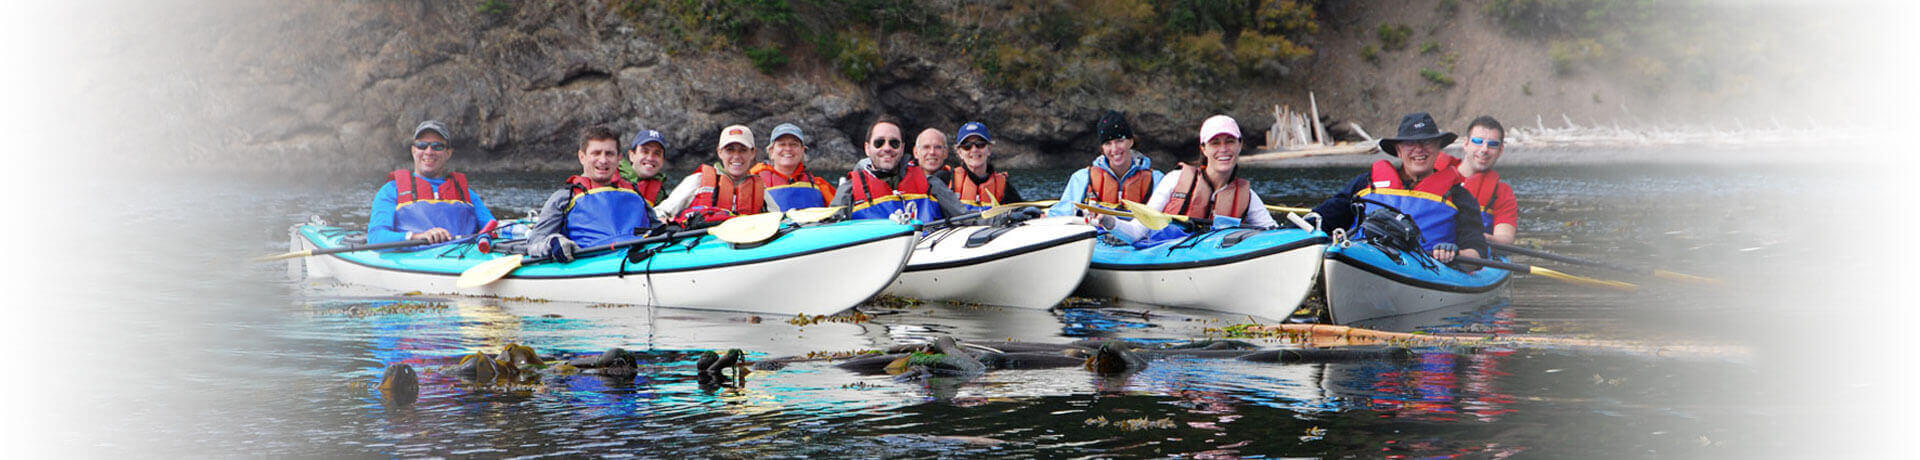 Kayaking-Tours-San-Juan-Island-1920x460-4